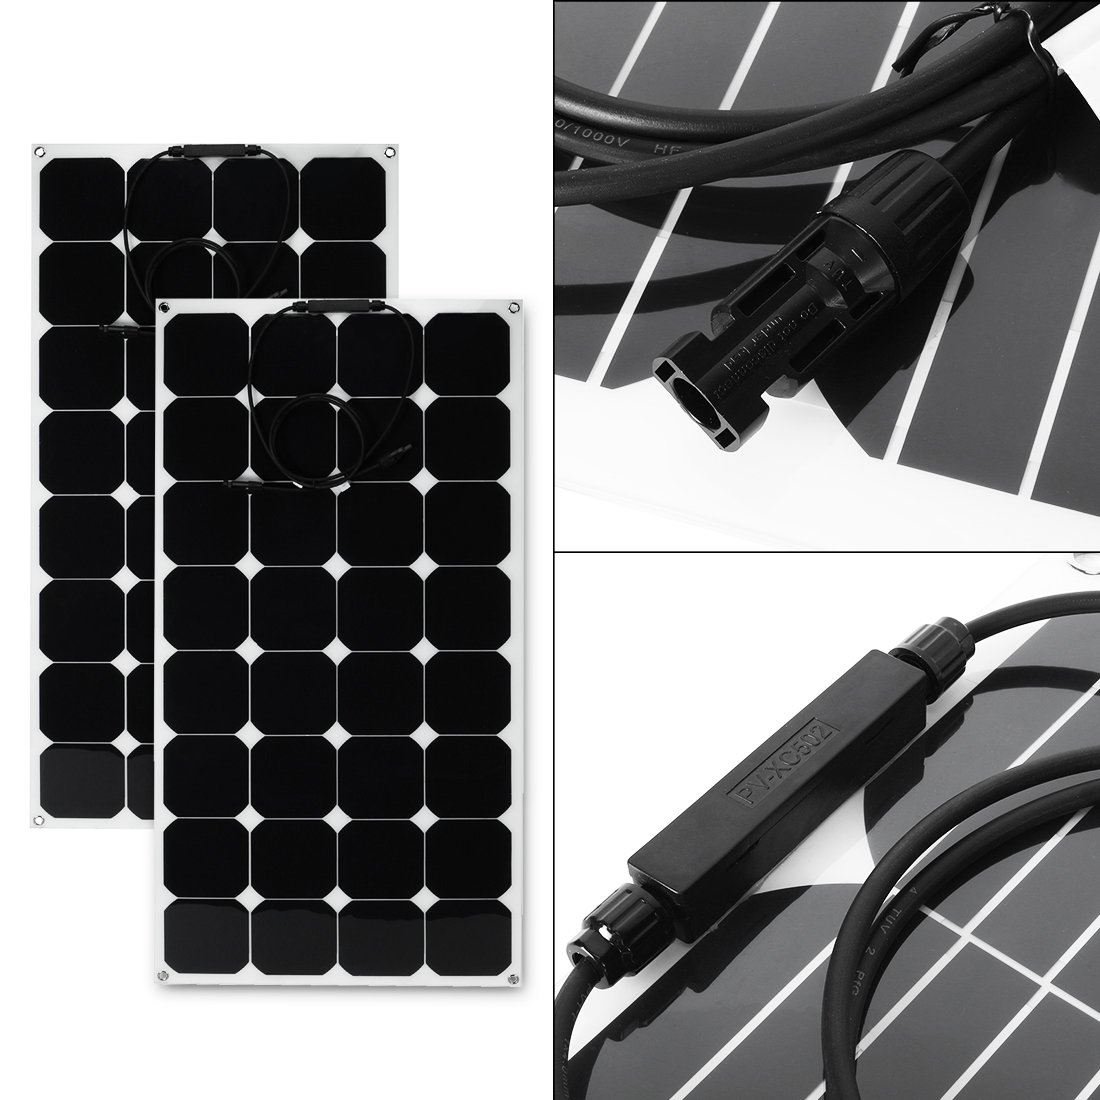 uxcell 2pcs 100W 18V 12V Solar Panel Charger Solar Cell Ultra Thin Flexible with MC4 Connector Charging for RV Boat Cabin Tent Car by BU LU SHI (Image #6)